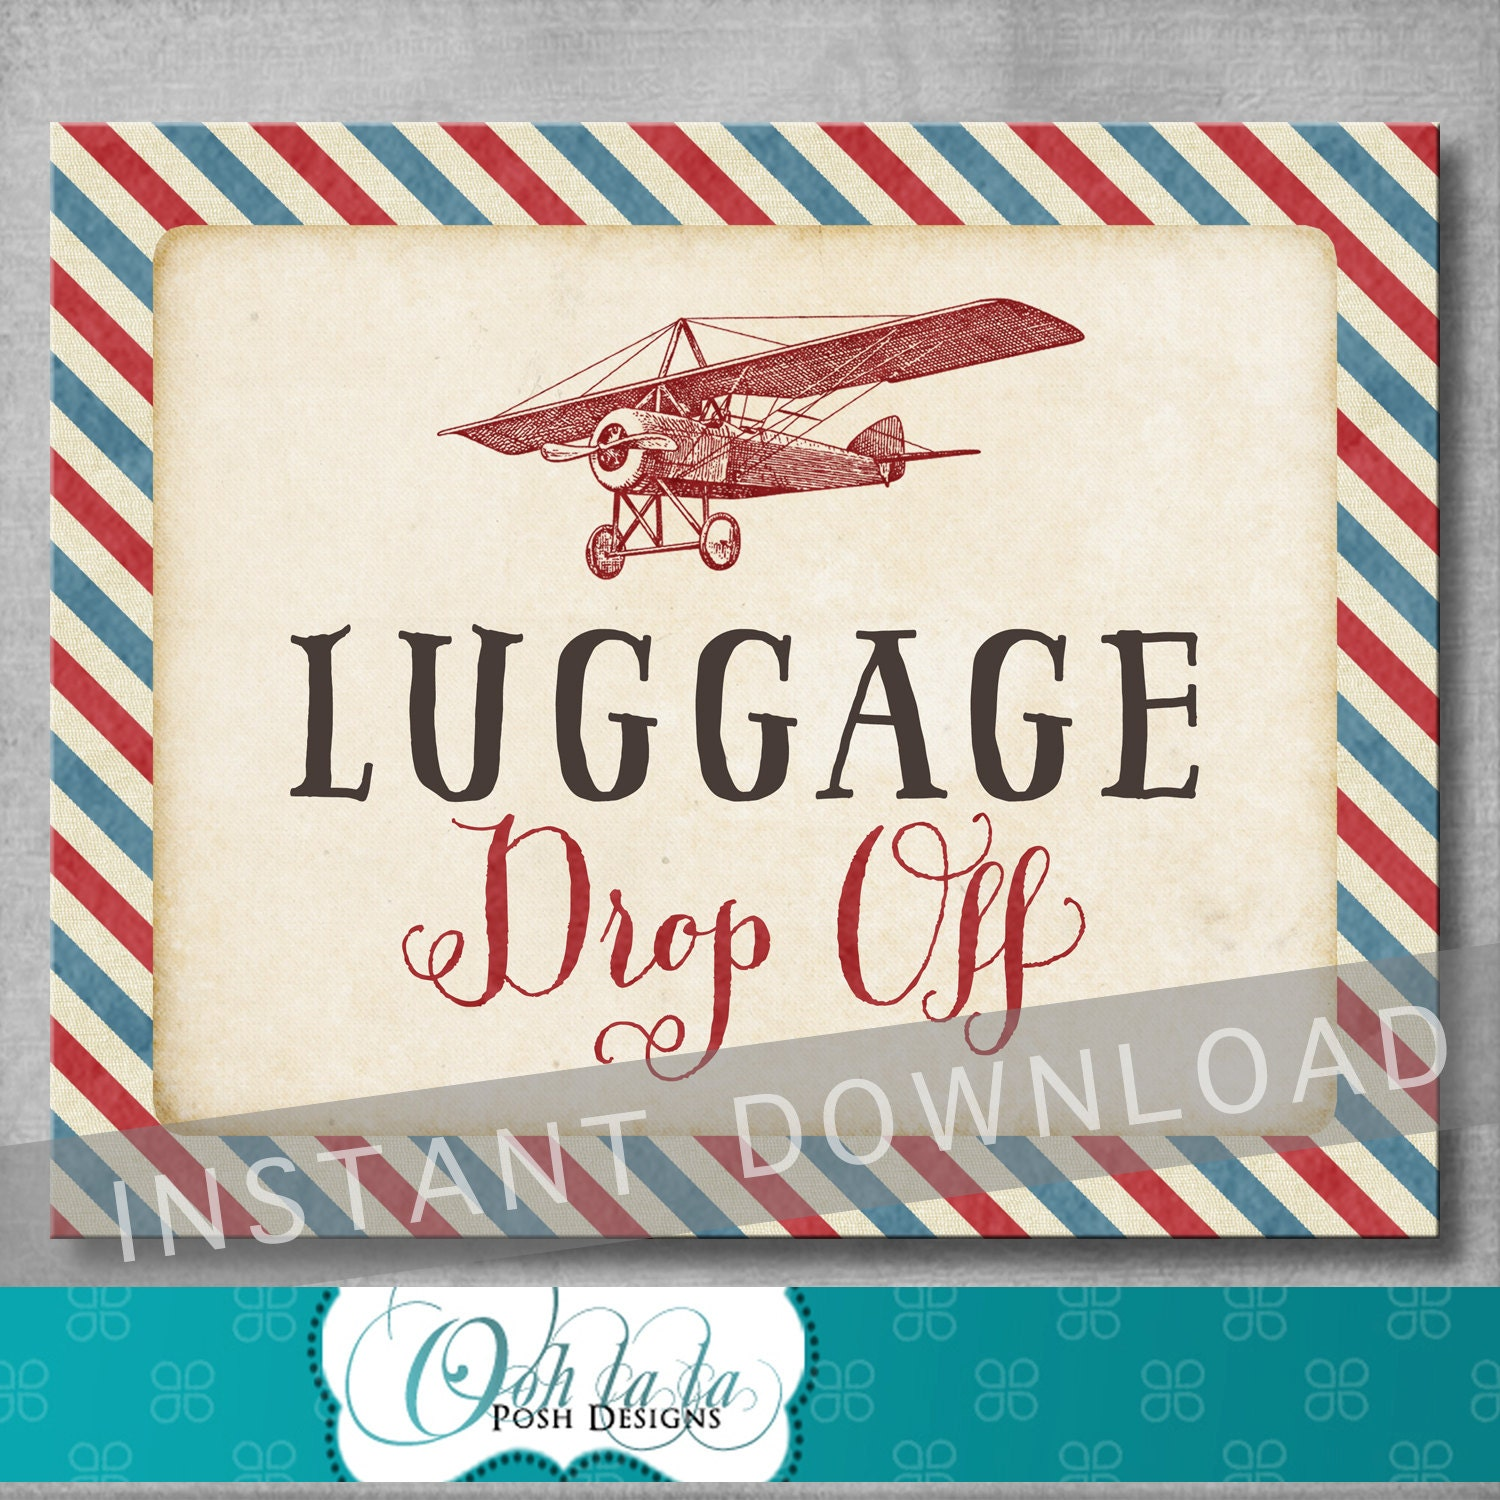 Luggage Drop f Sign 8x10 inches Vintage Airplane Baby